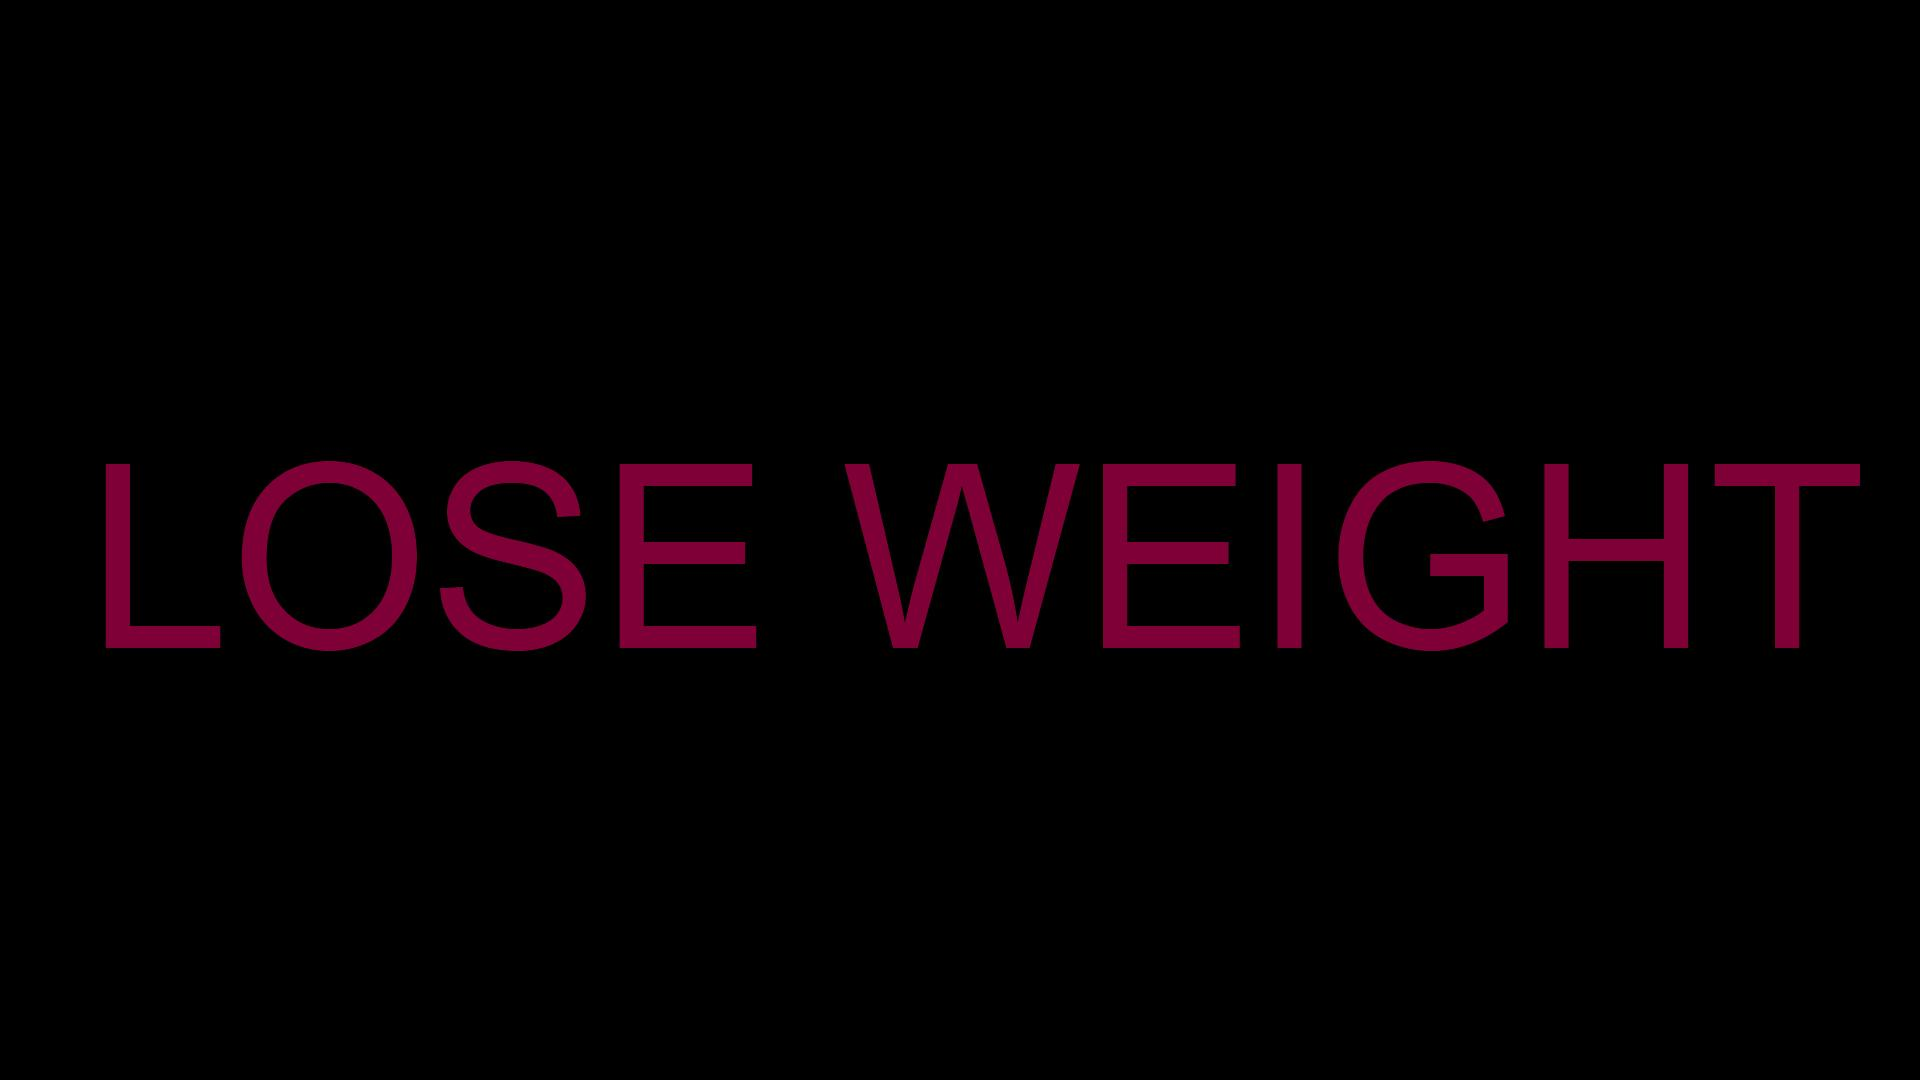 download lose weight wallpaper gallery